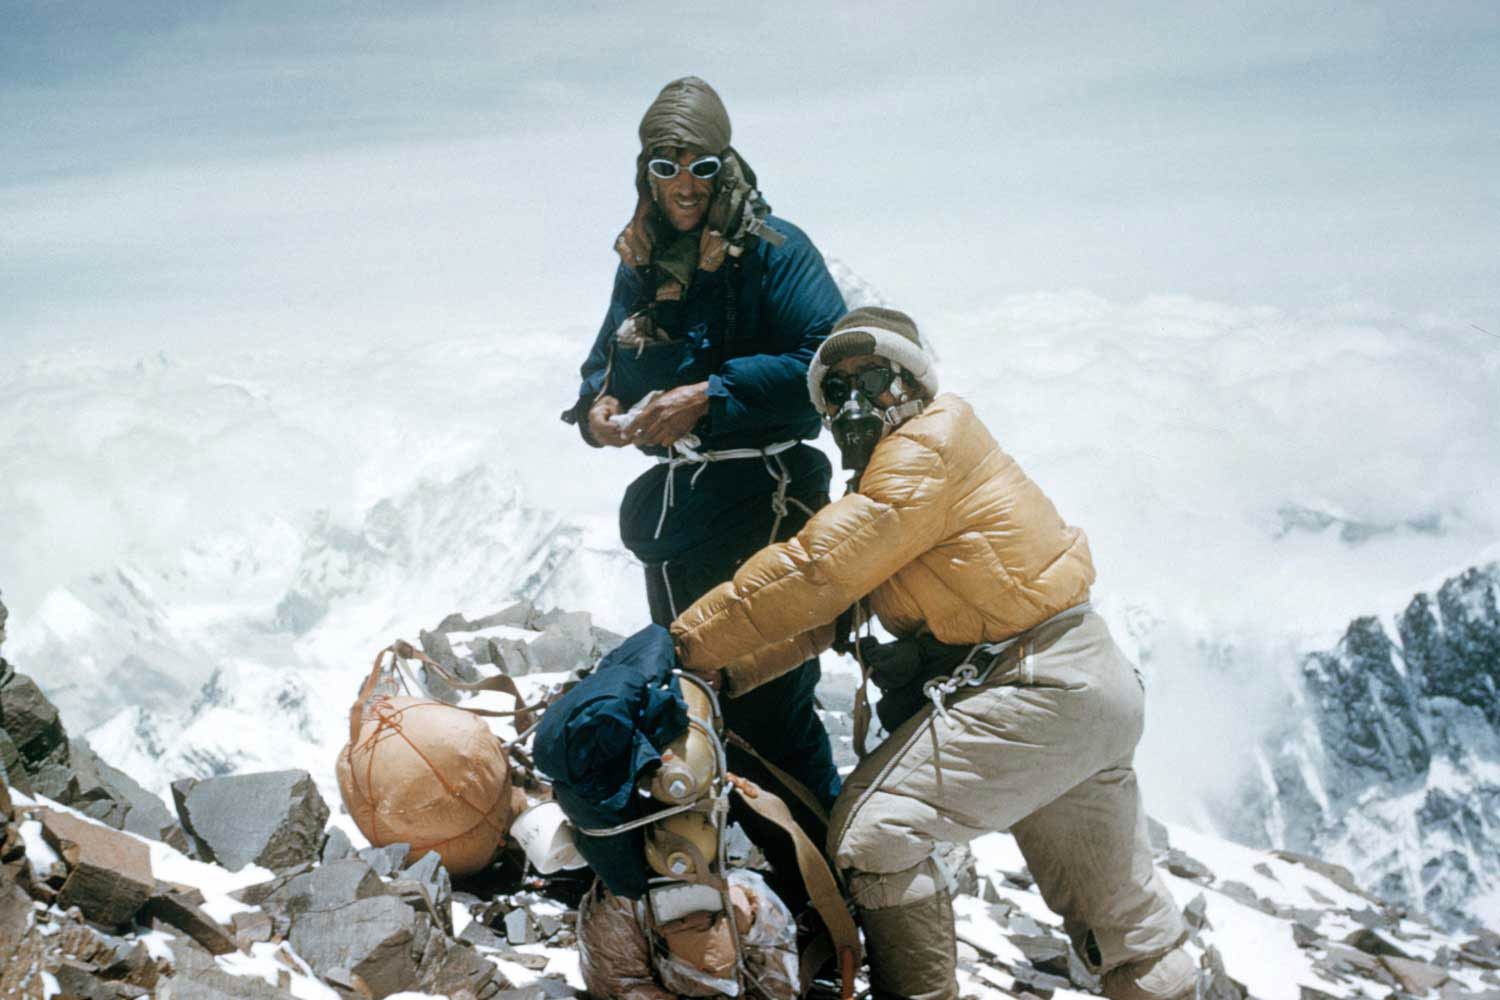 New Zealander Sir Edmund Hillary and Tenzing Norgay, a Nepali Sherpa climber, were the first successful pair from John Hunt's British expedition, and the first in the world to have reached the summit of Mt. Everest. These climbers were given the Rolex reference 6098 big bubbleback watches.